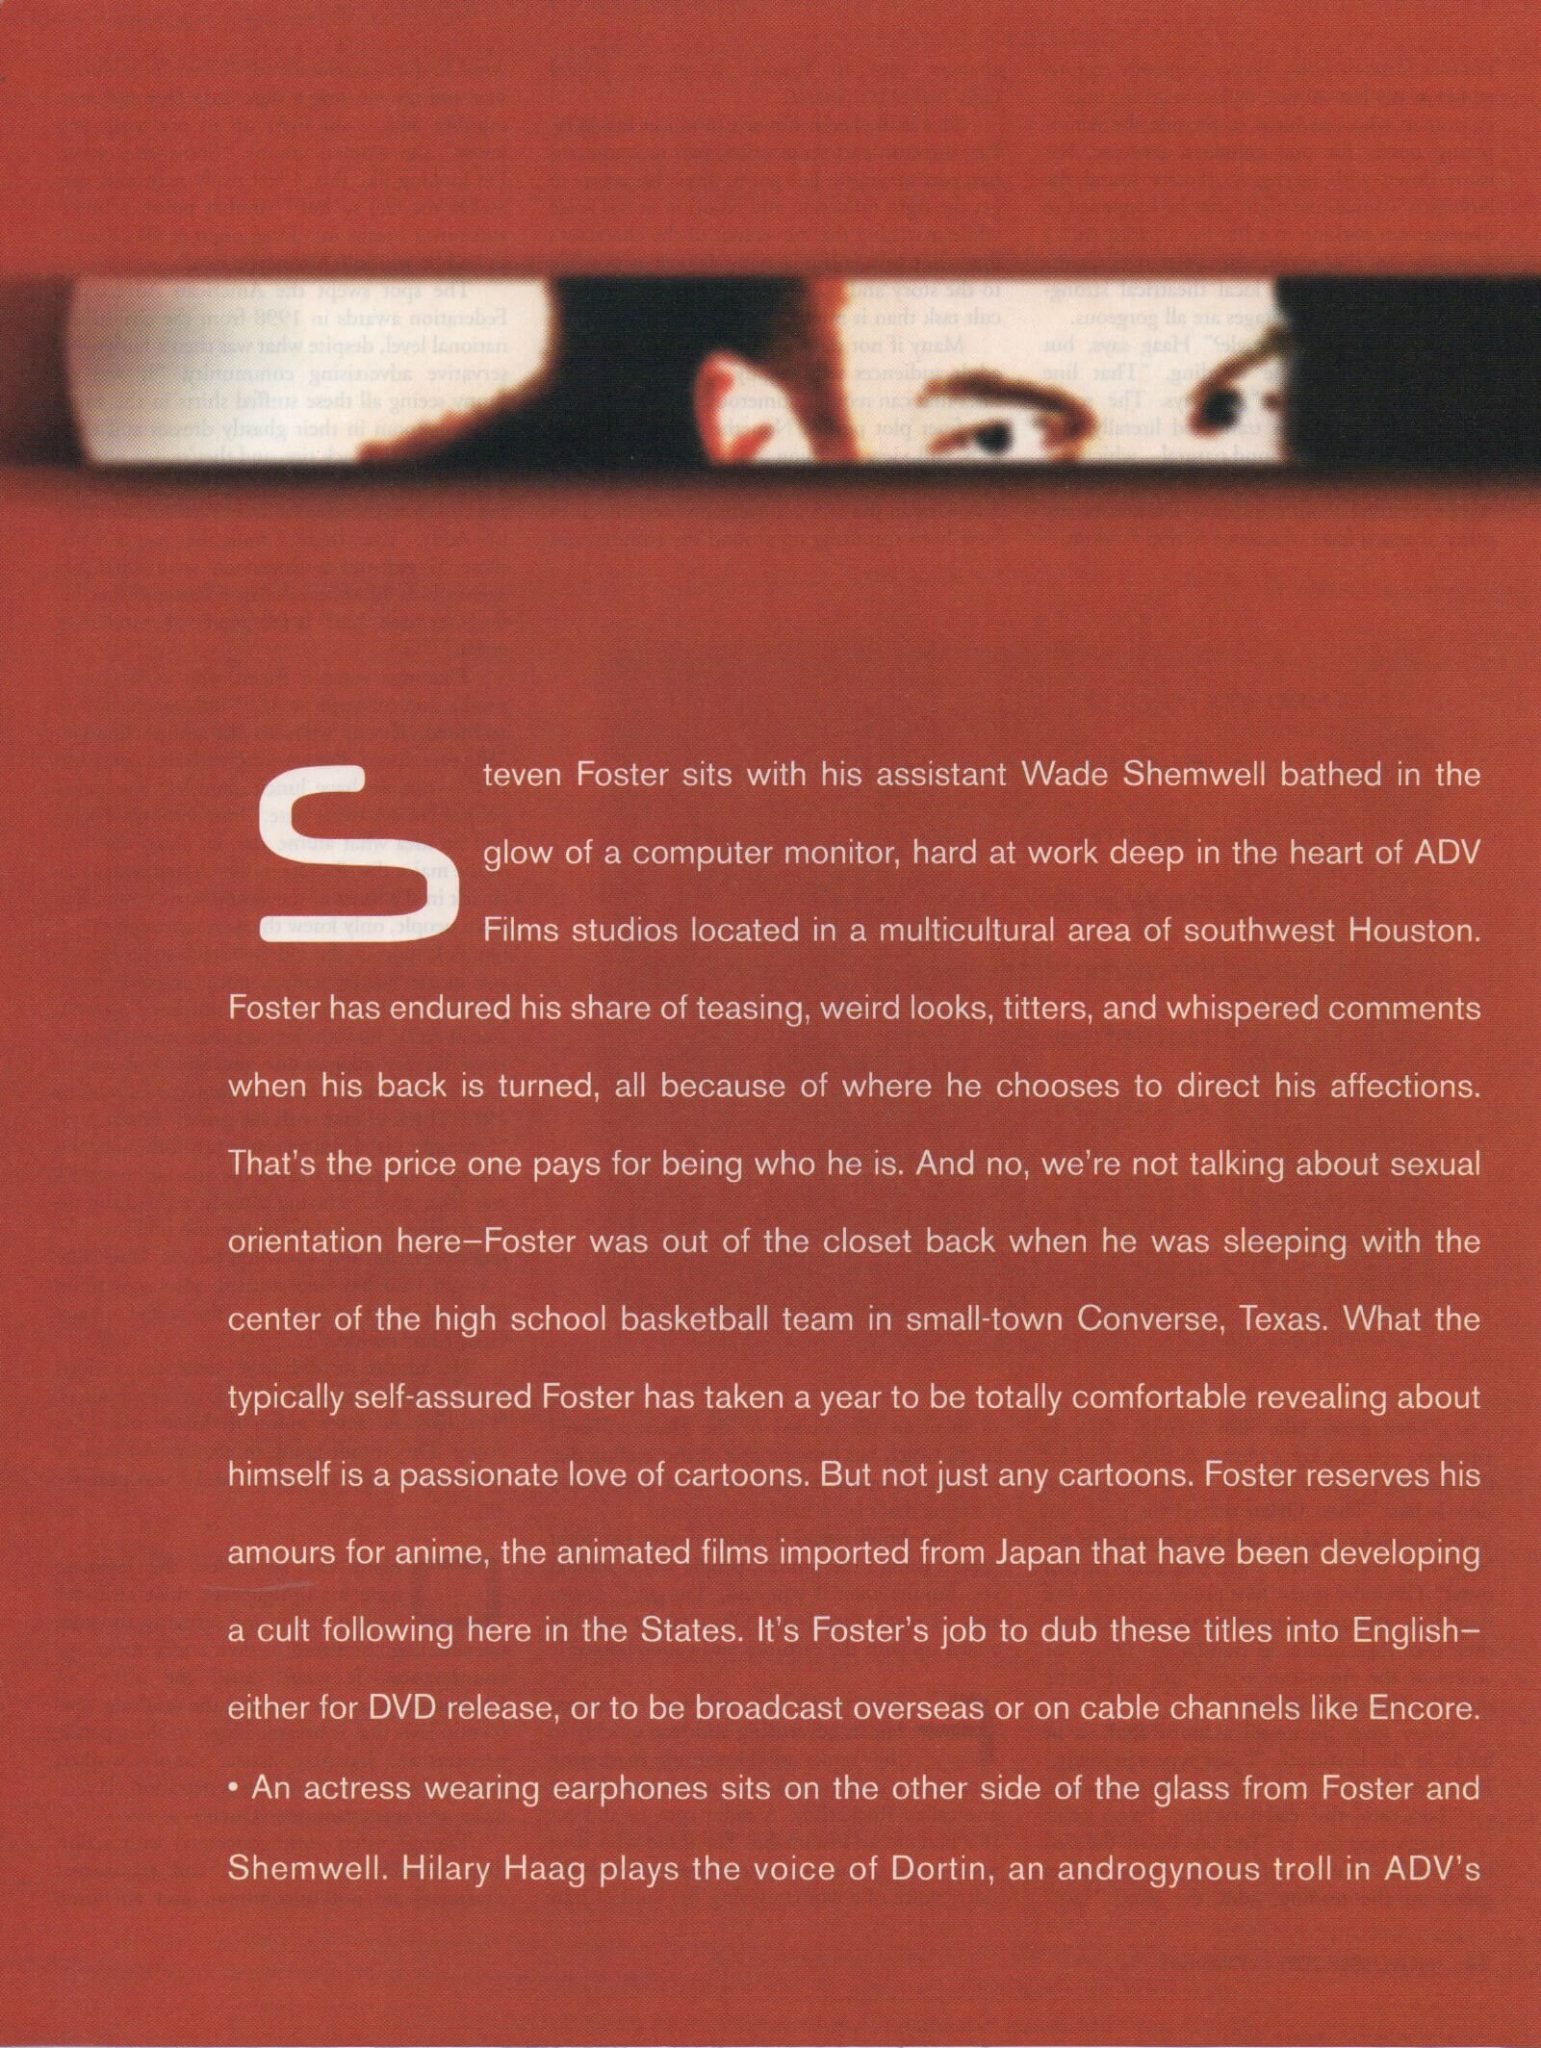 Page 2 of the OutSmart Magazine interior of the Ste7en Foster article